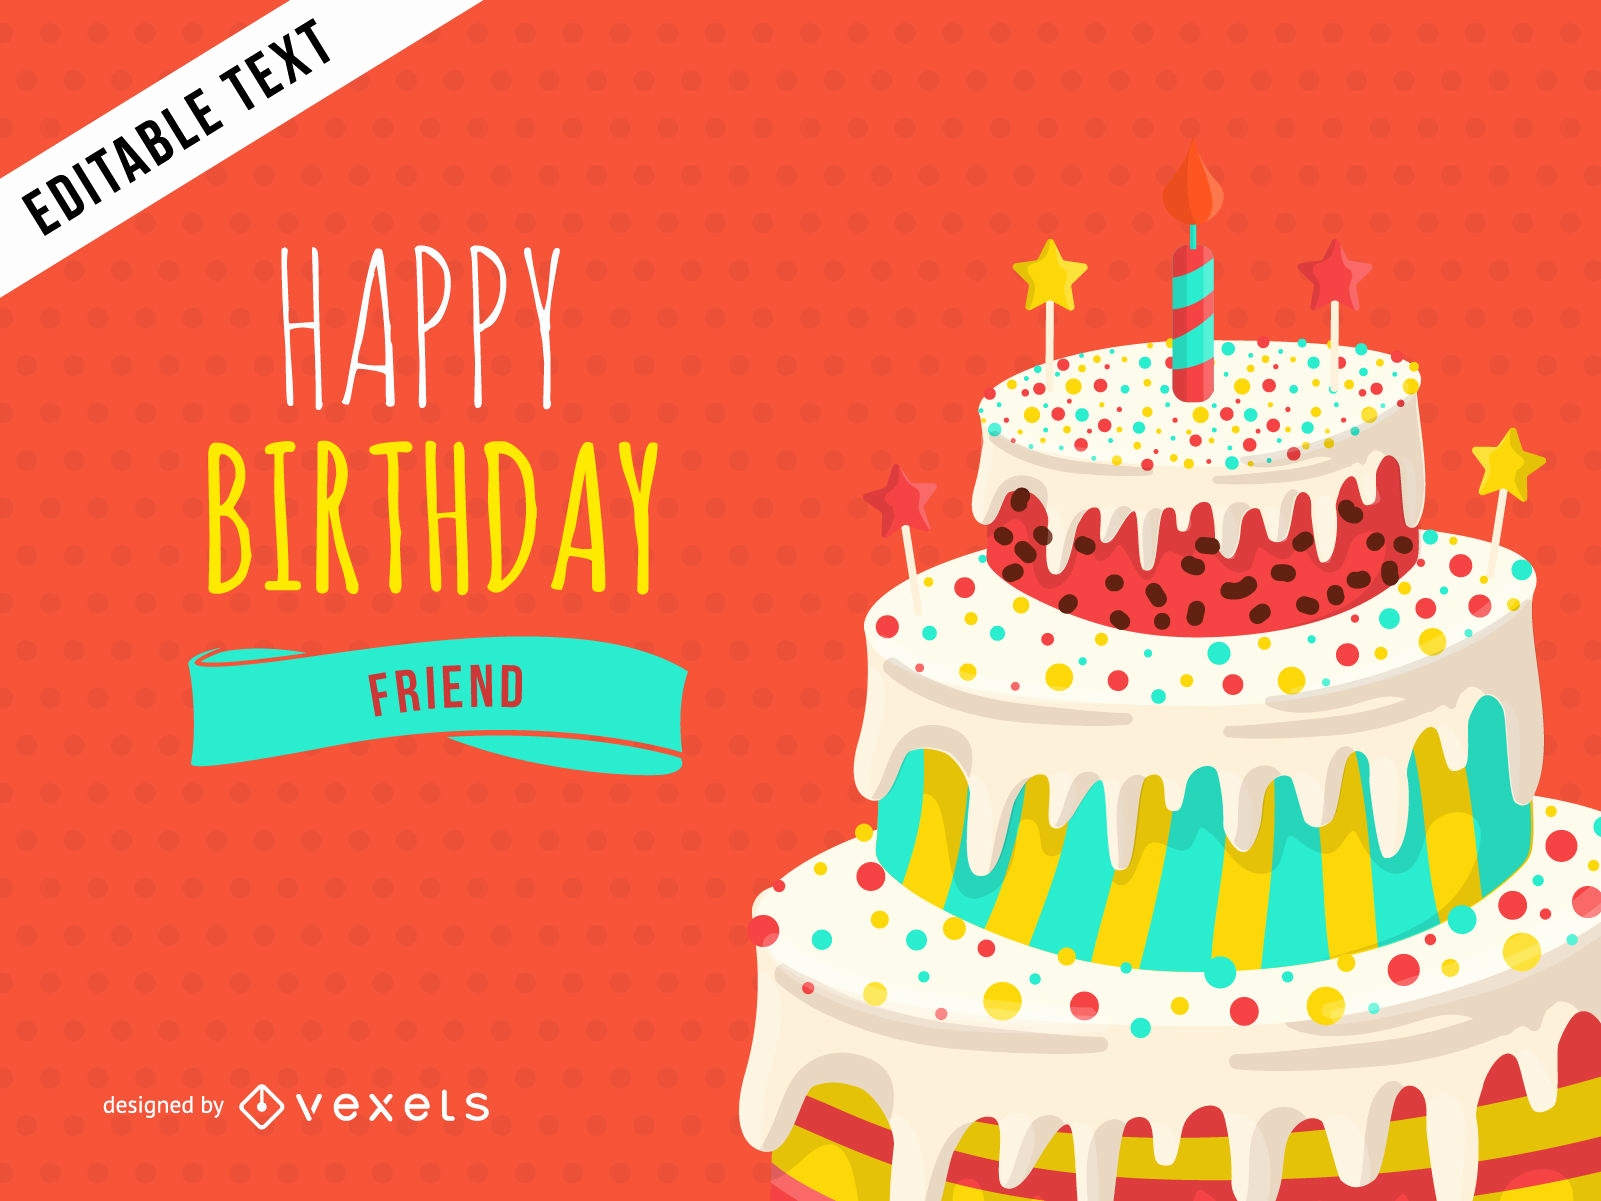 birthday cards with name and photo editor online ; birthday-cards-with-name-and-photo-editor-online-inspirational-happy-birthday-greeting-card-design-vector-of-birthday-cards-with-name-and-photo-editor-online